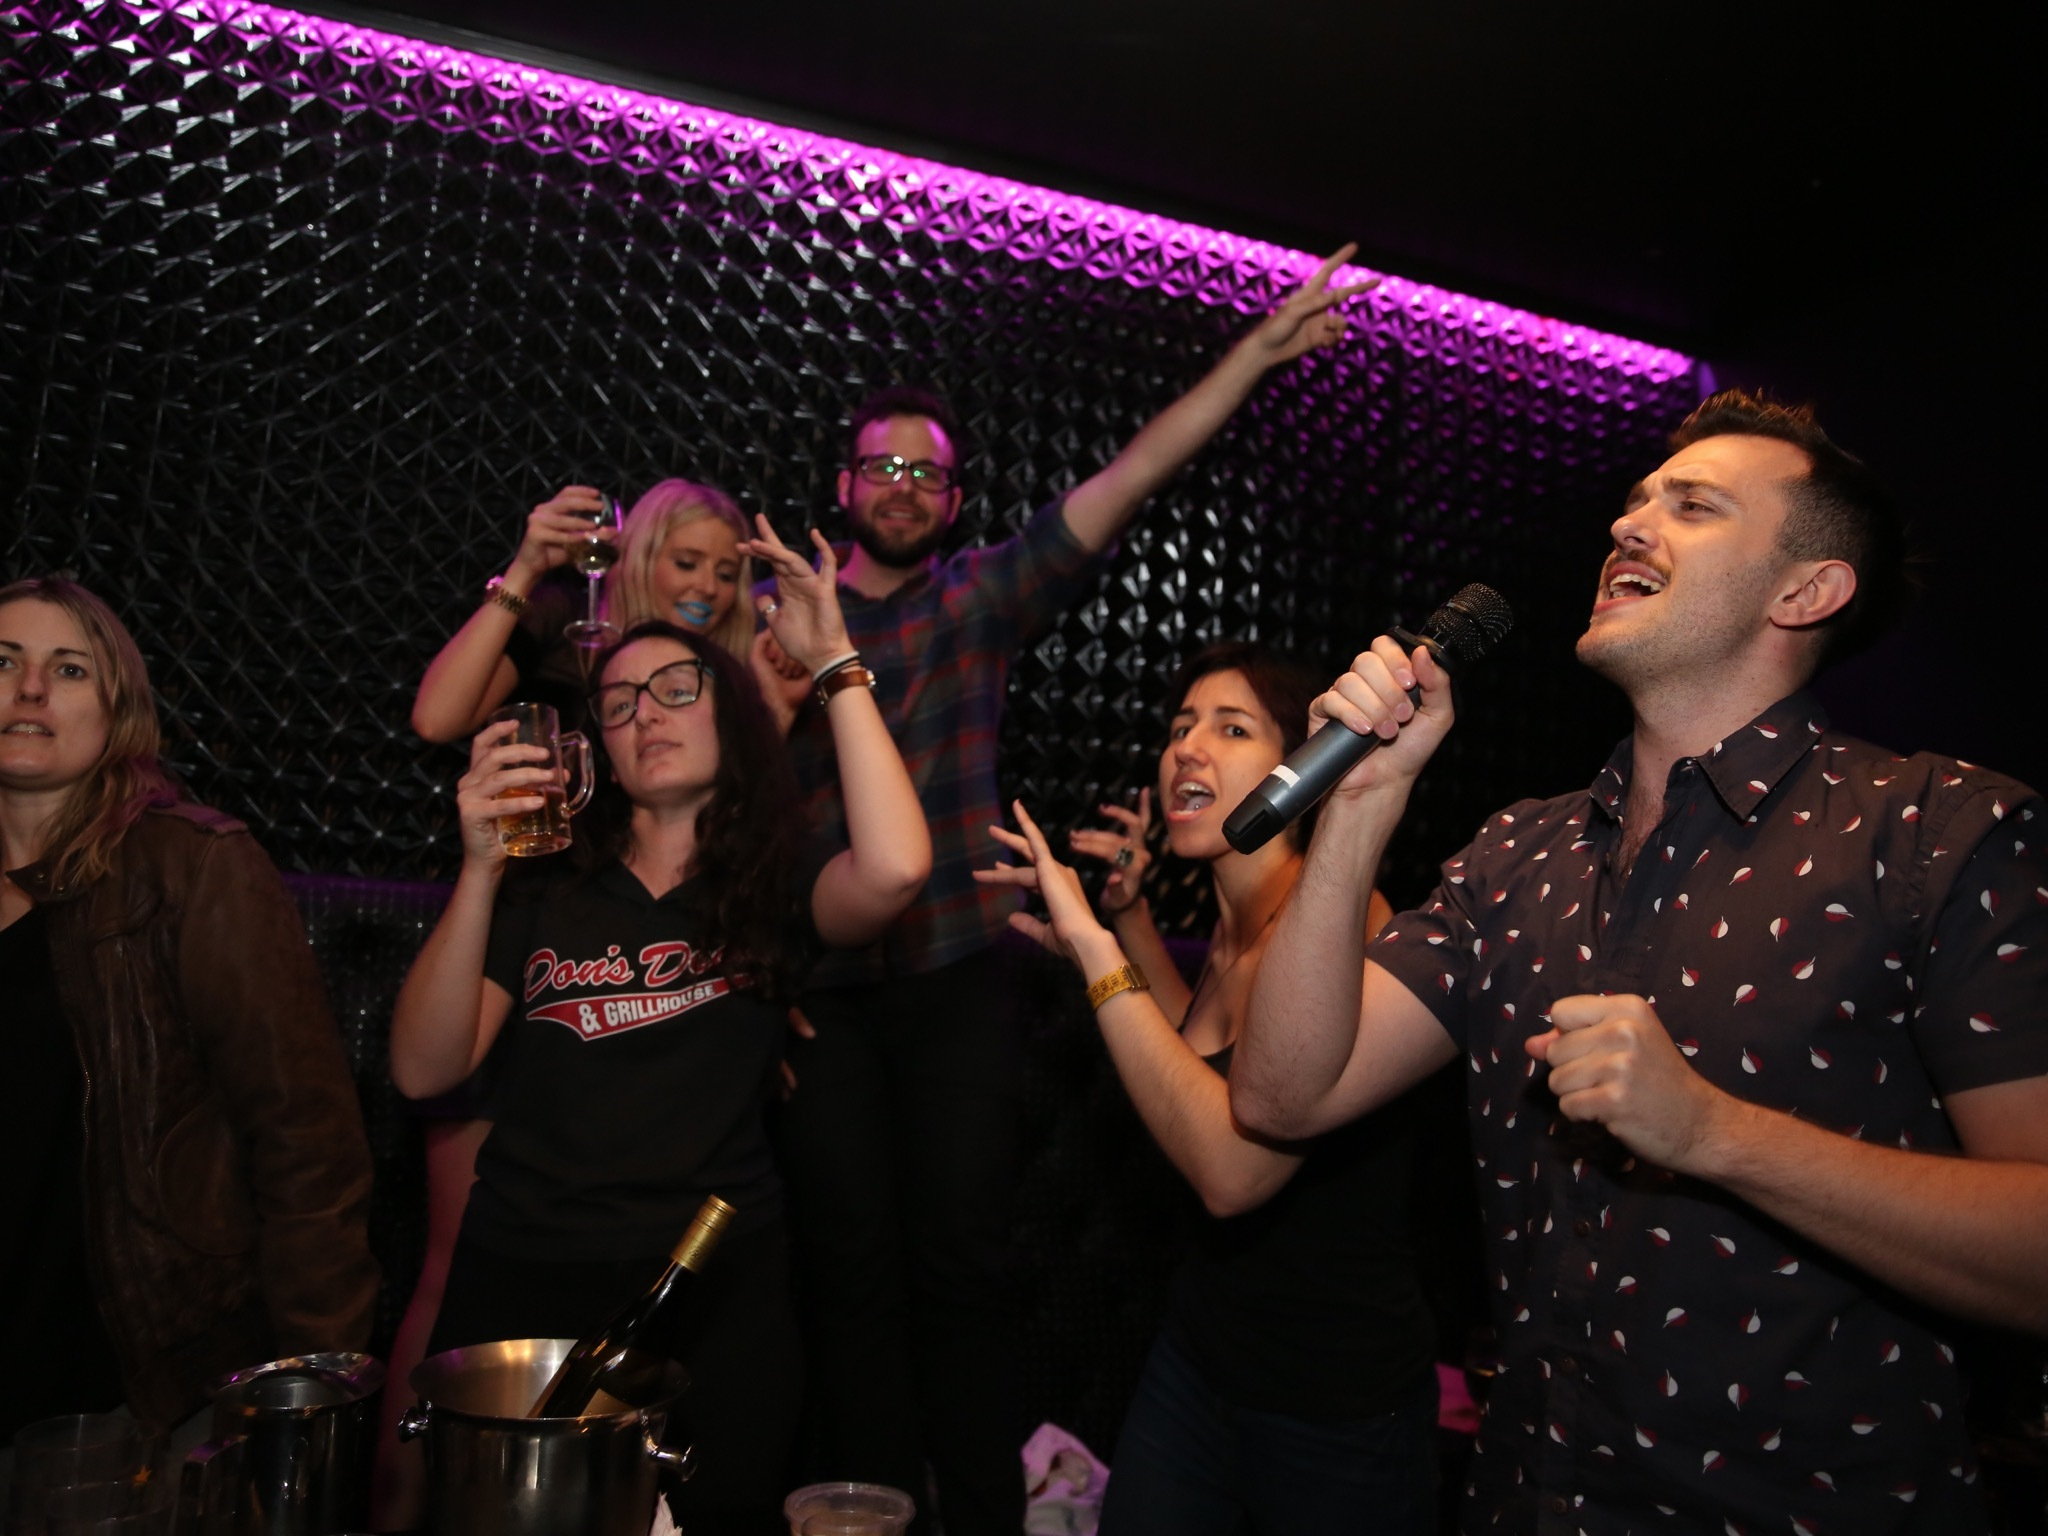 A generic image of a group of people in a karaoke room singing